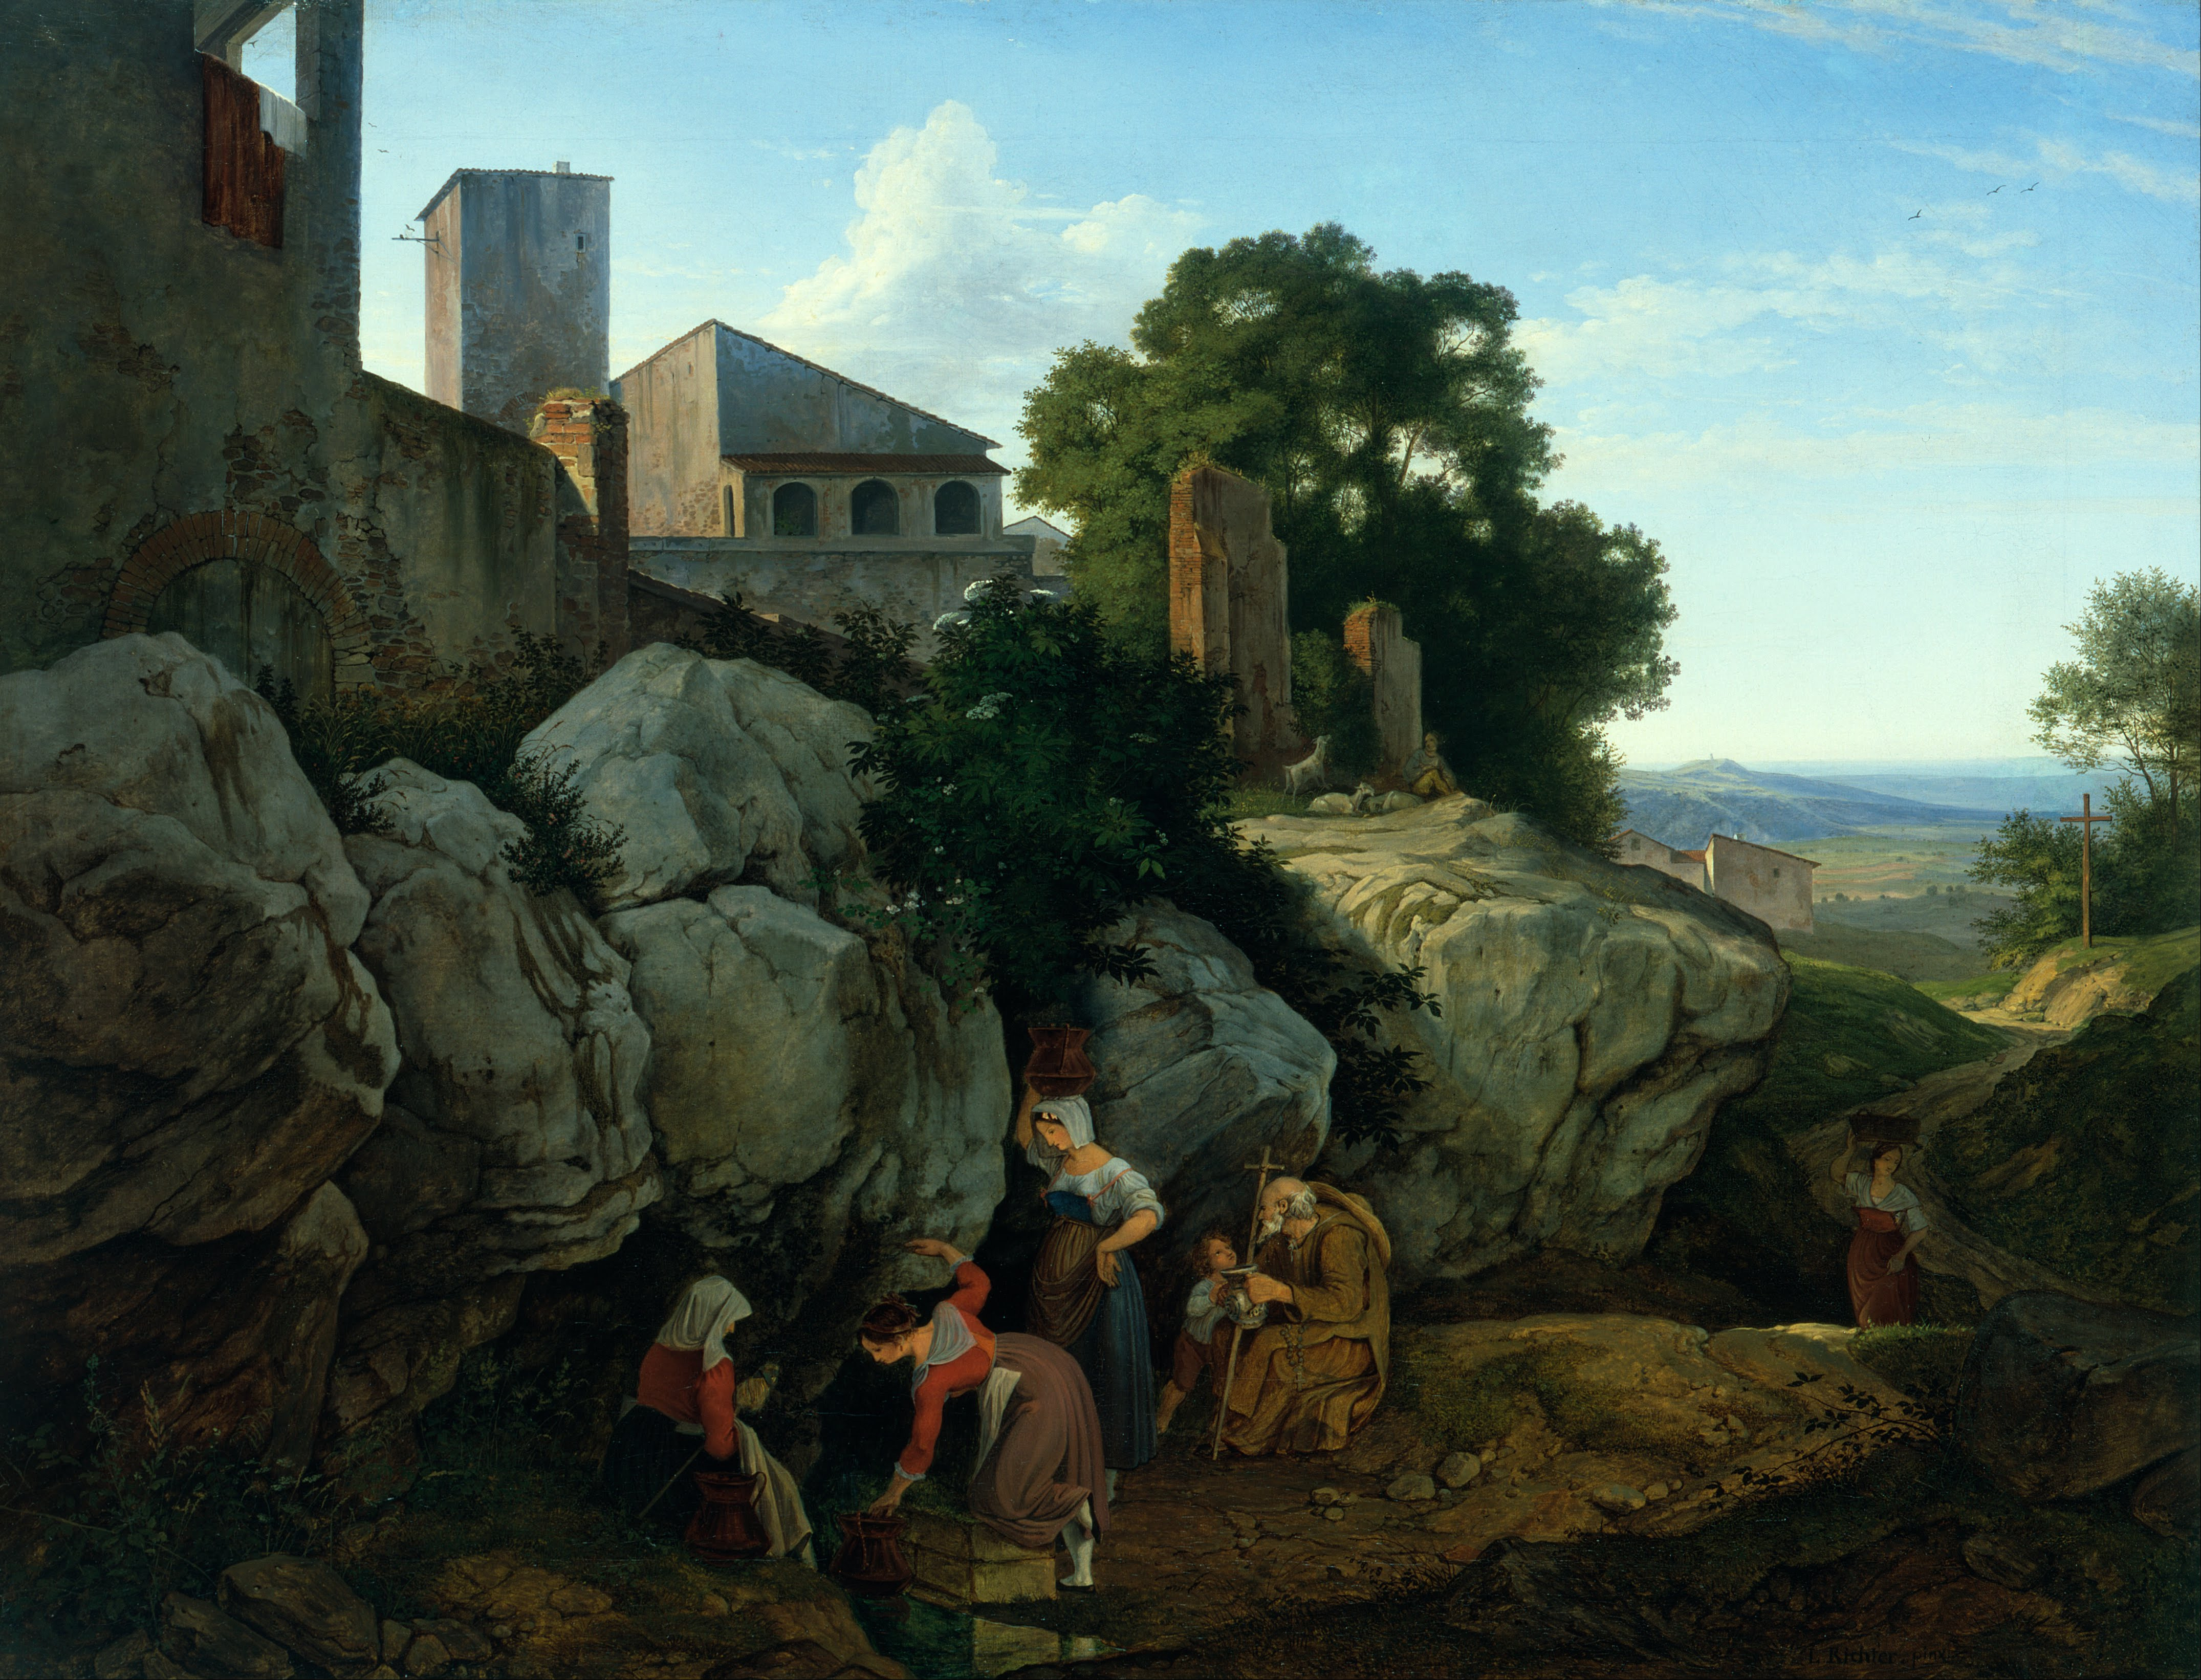 Ludwig_Richter_-_Ariccia_(Morning)_-_Google_Art_Project